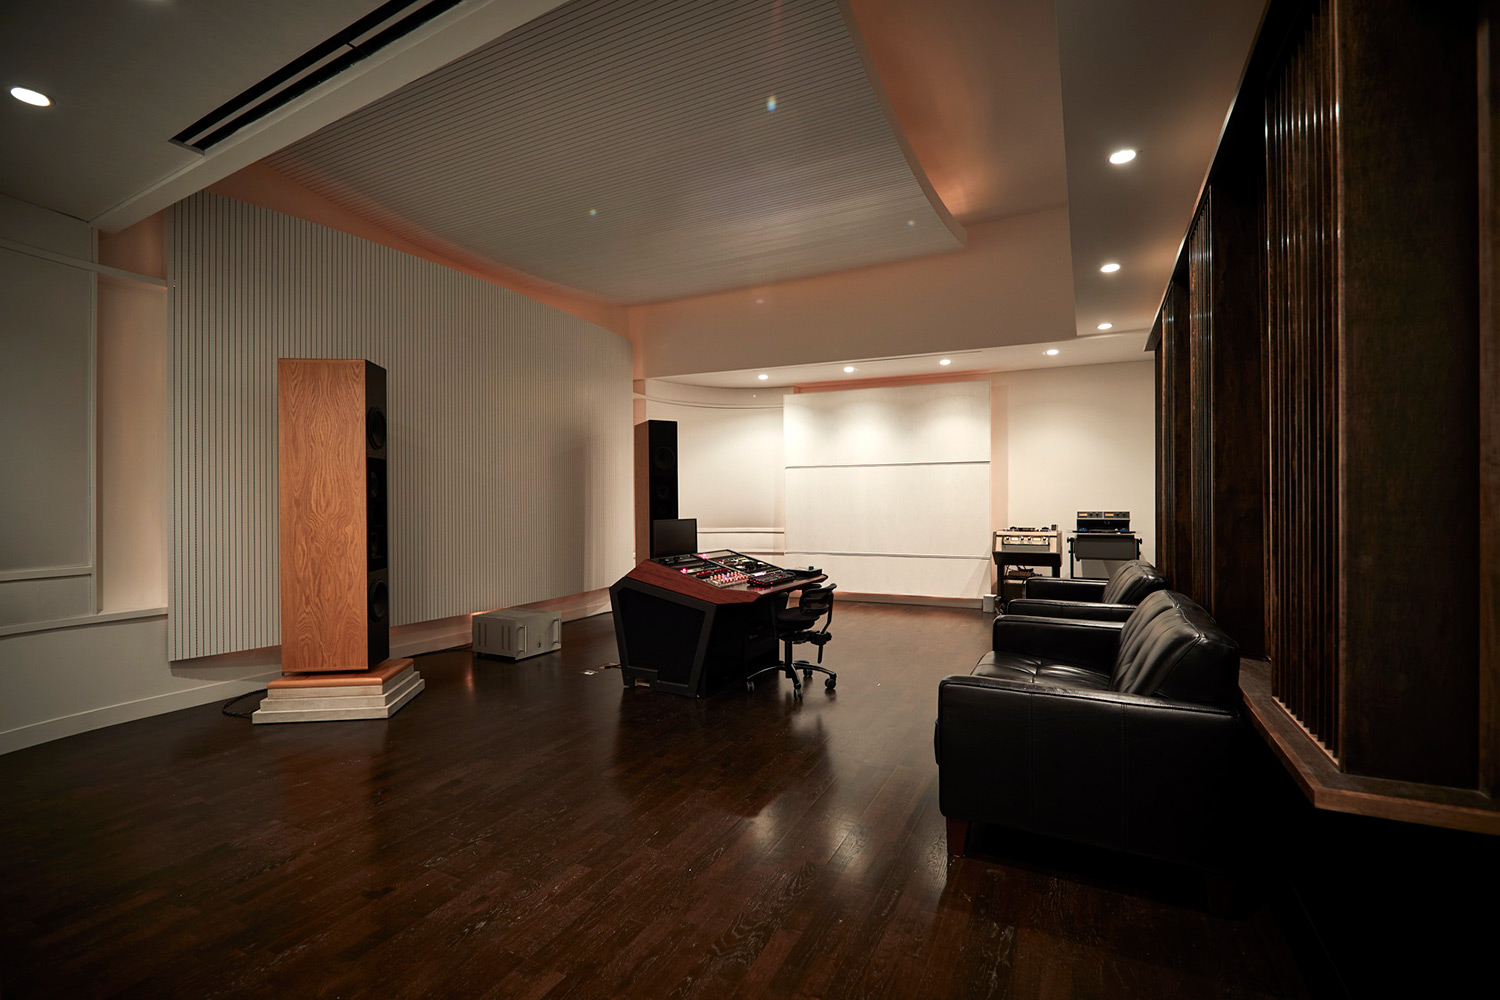 Top mastering engineer and Boiler Room founder Collin Jordan inquired WSDG to fully design his new mastering room in Chicago. WSDG's balance of technical acoustics and artistic design was spot on and made it easy to make the decision. Studio side view.